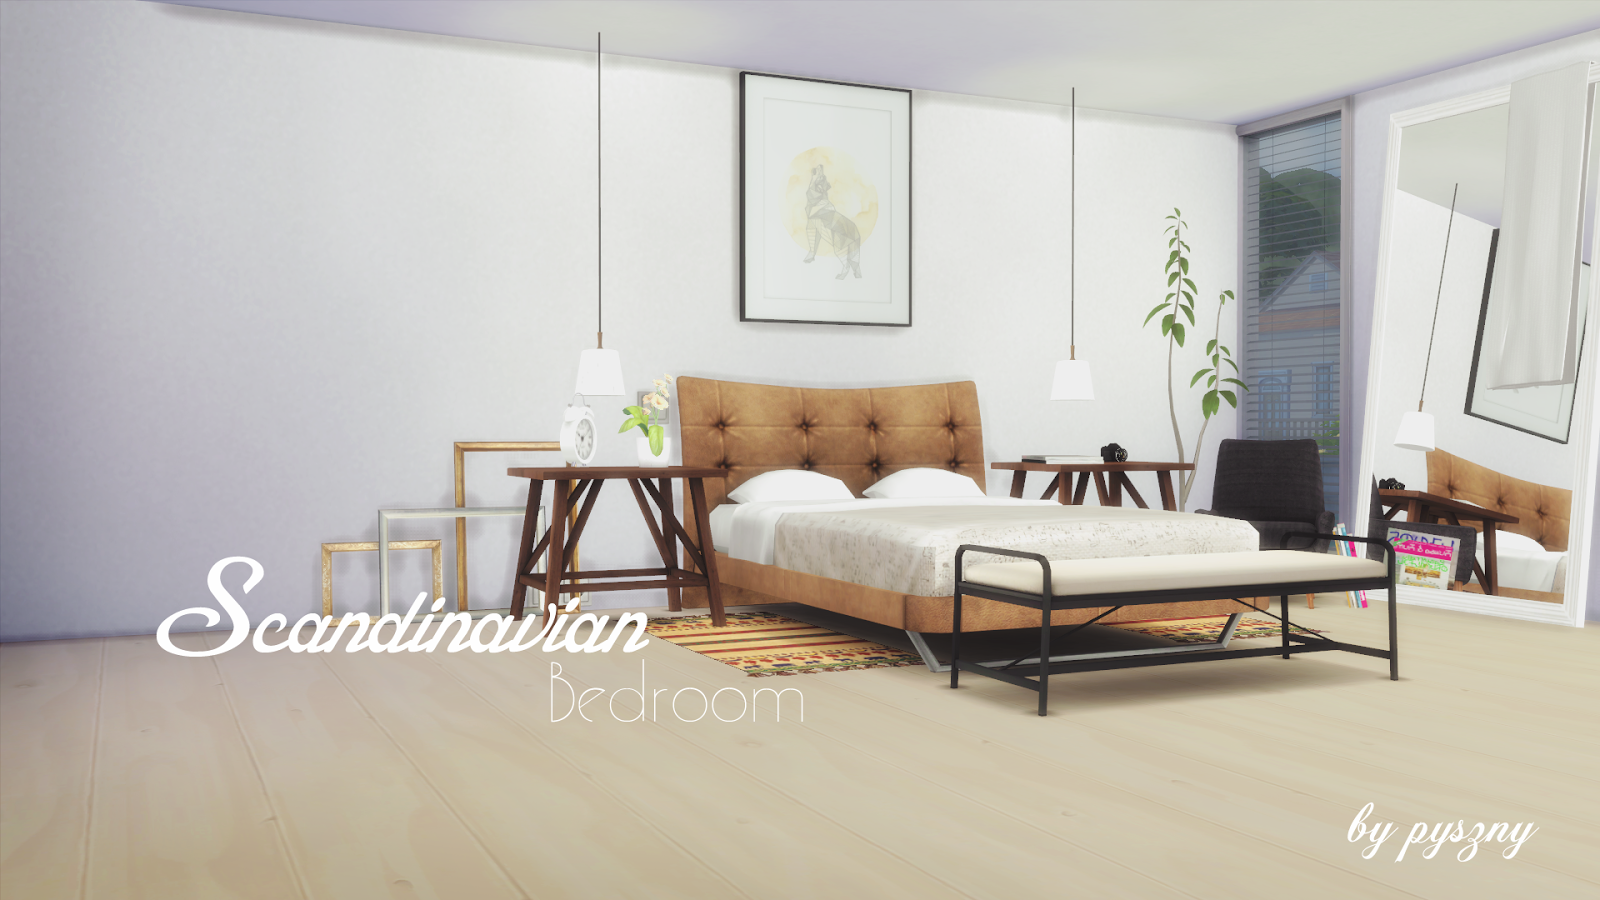 28 Scandinavian Bedroom Furniture My Sims 4 Blog